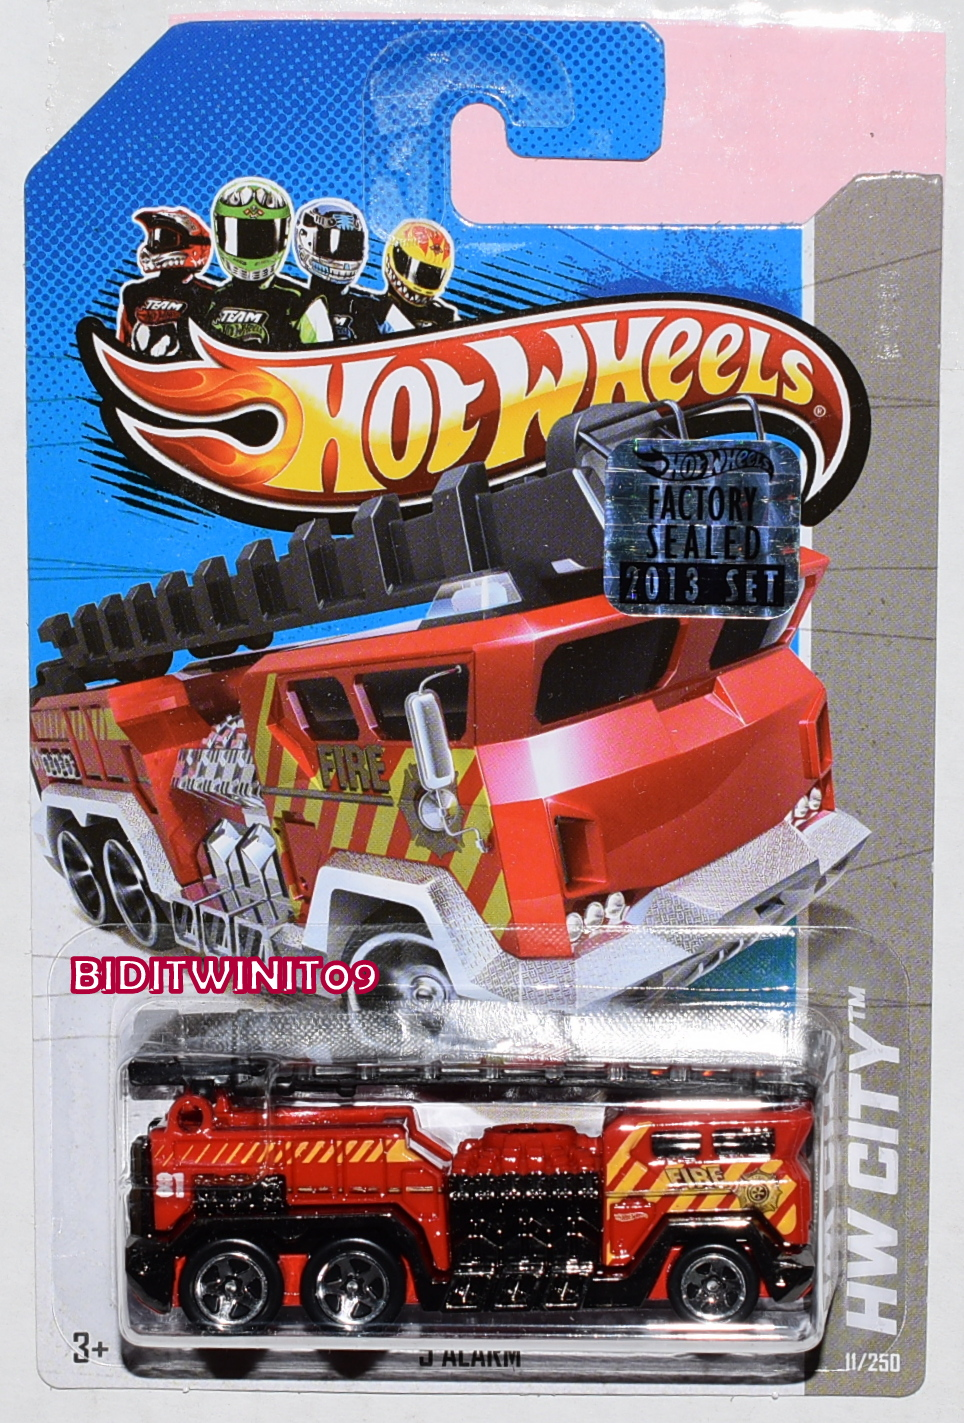 HOT WHEELS 2013 HW CITY 5 ALARM RED FACTORY SEALED